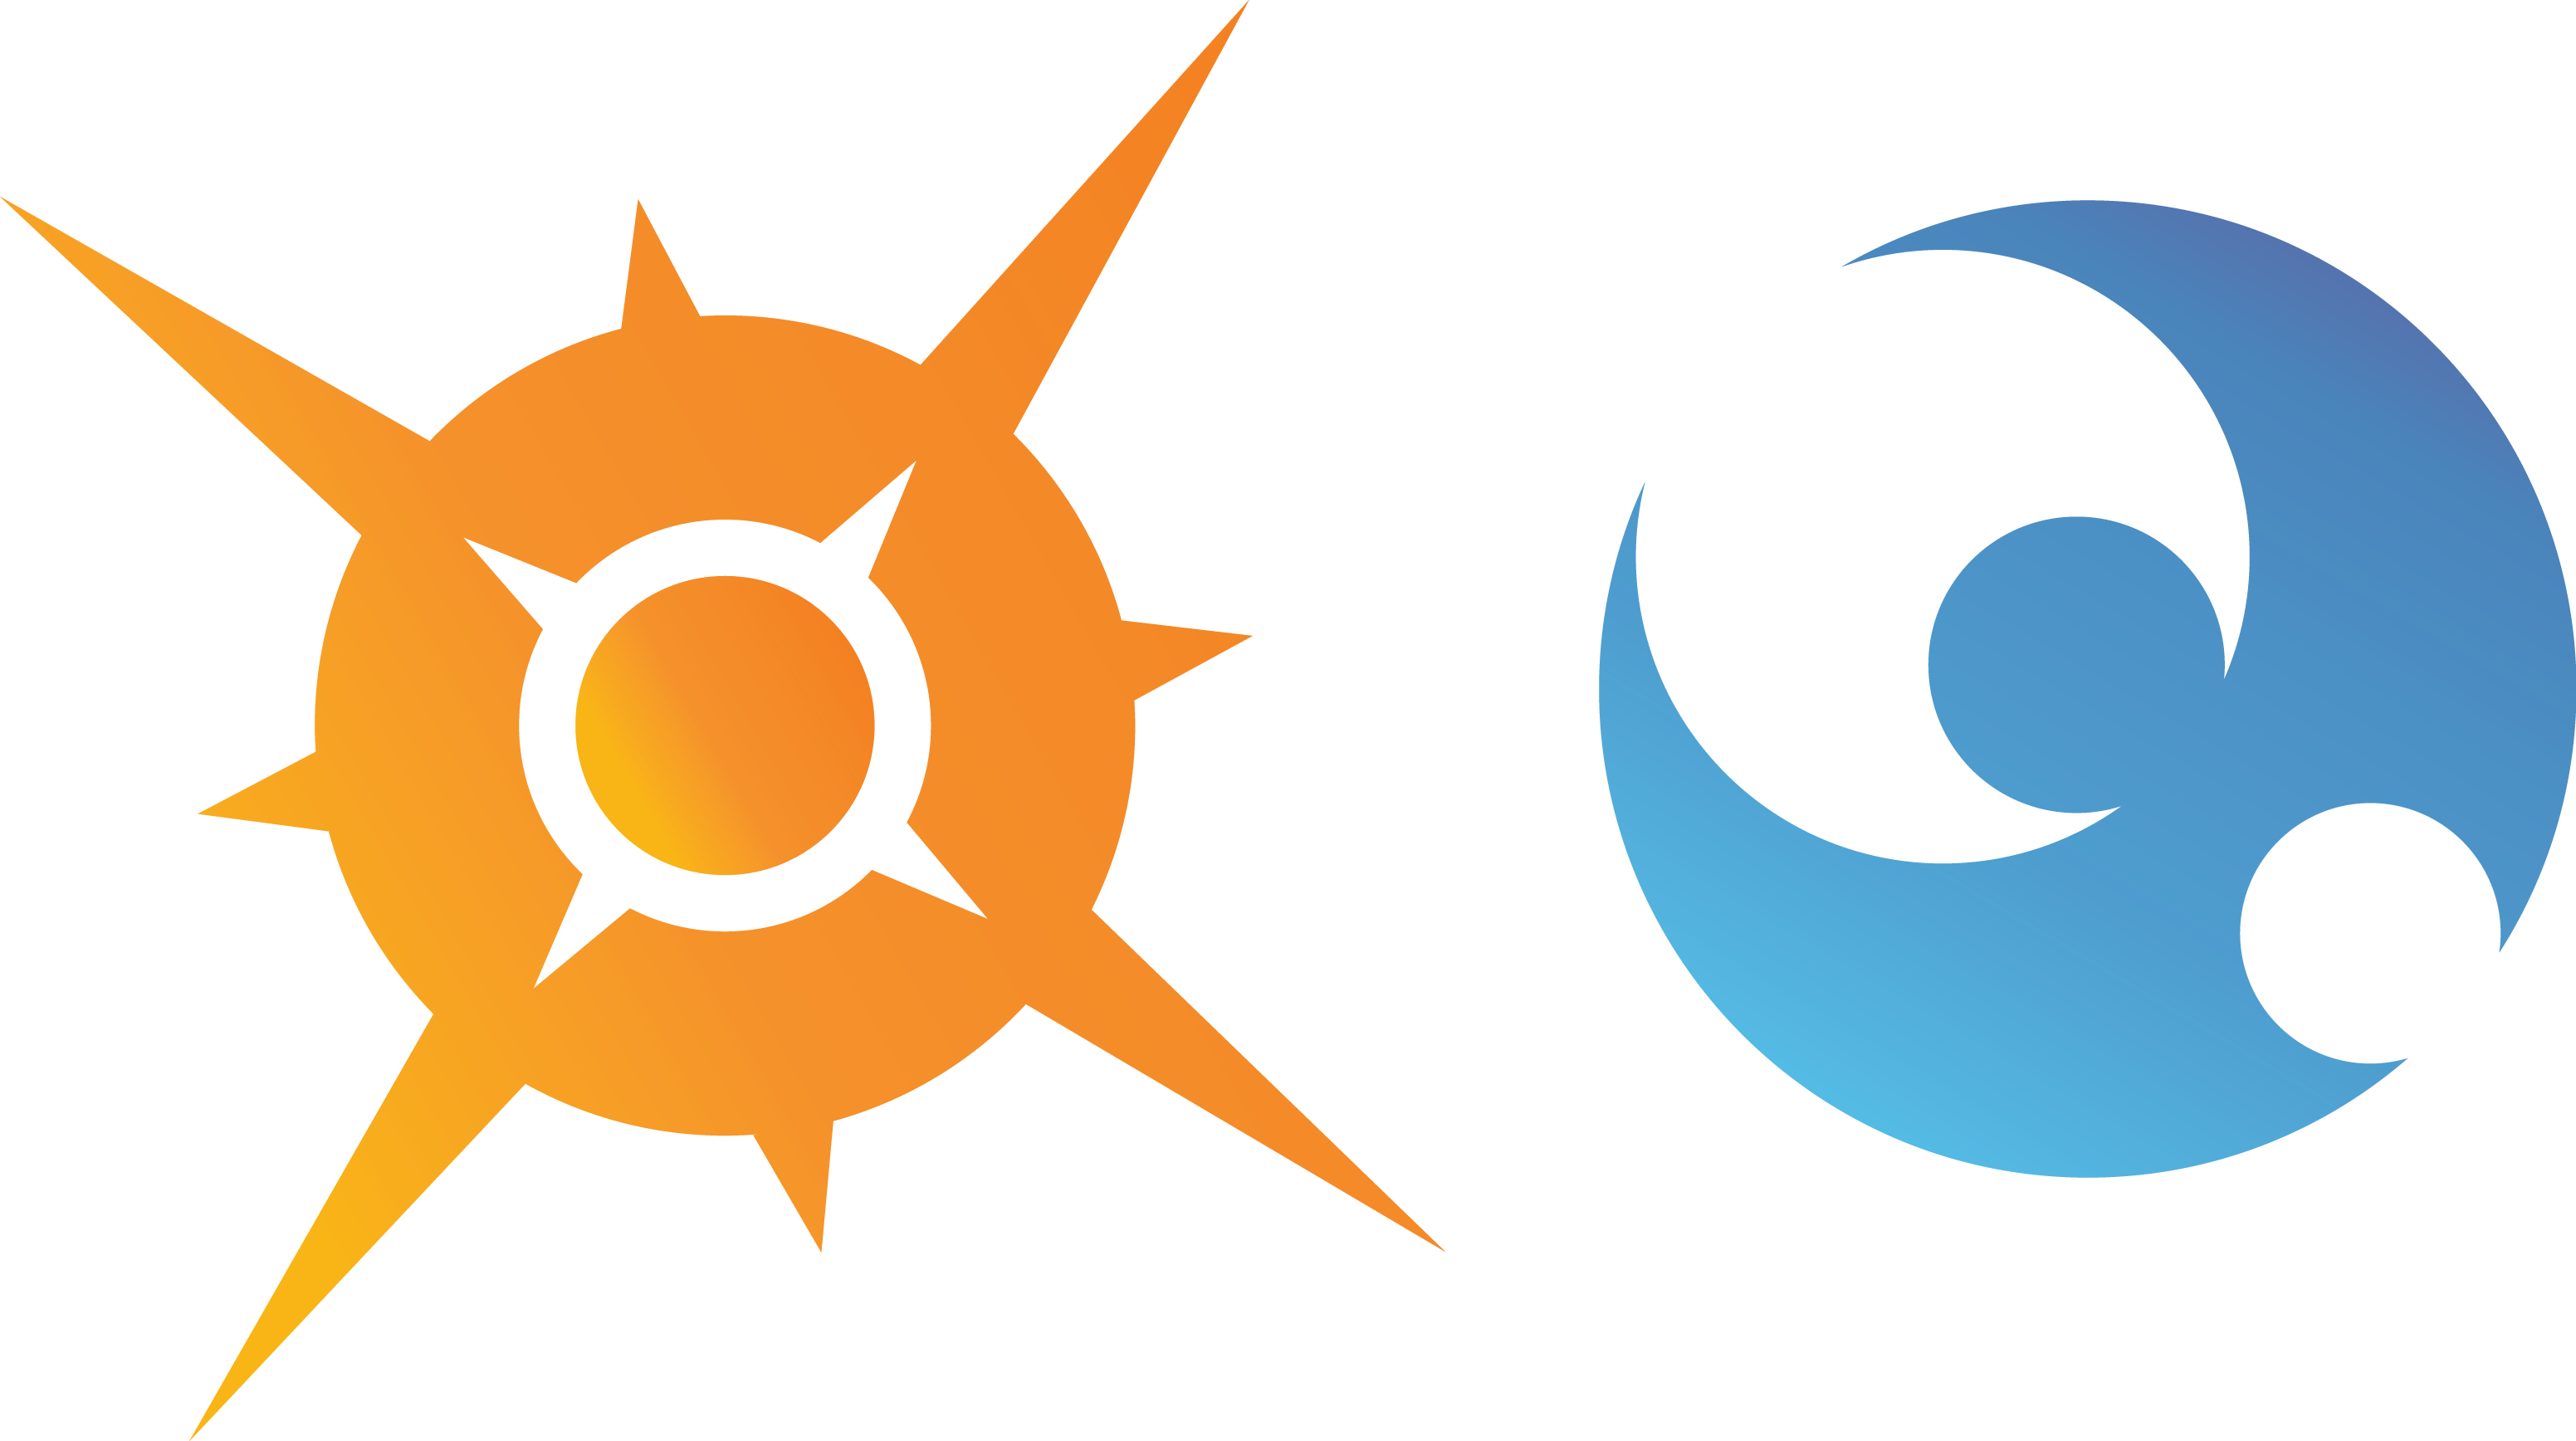 Sun and moon watch face clipart png transparent download Review: Pokemon Sun and Moon | The Sundial png transparent download